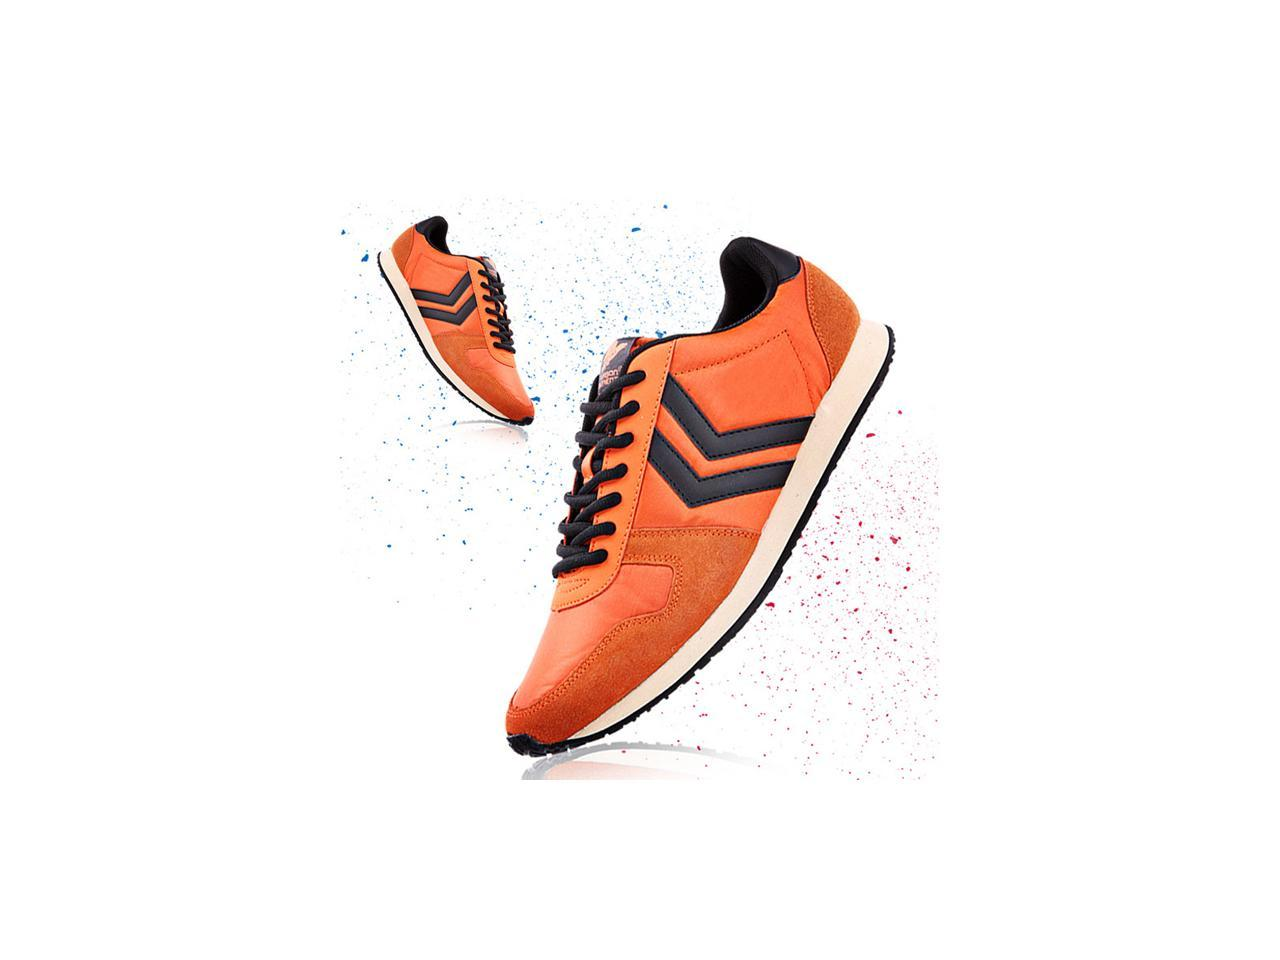 1 Pair NEW Men Casual Comfort Outdoor Sports Shoes Running 10 Sneakers Orange US Size 10 Running CH Size 44 4f9e21